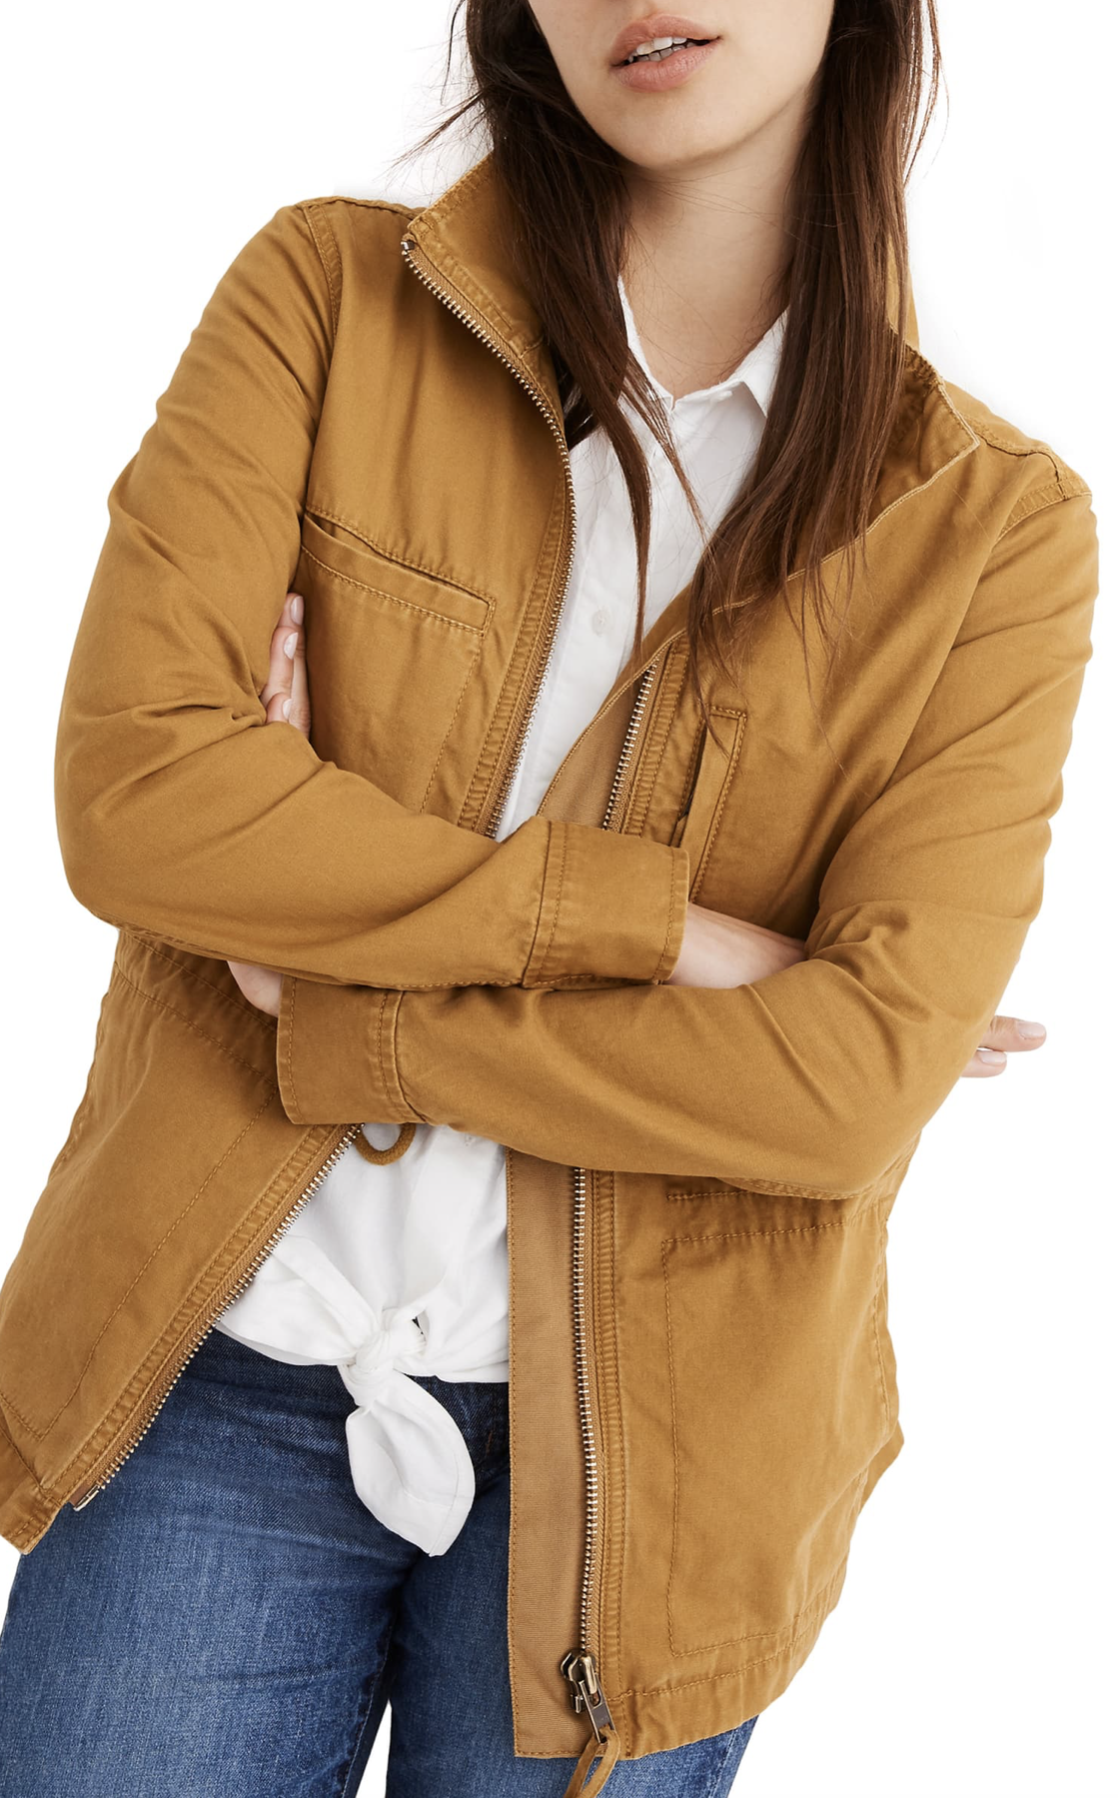 Madewell Fleet Jacket - $64.90